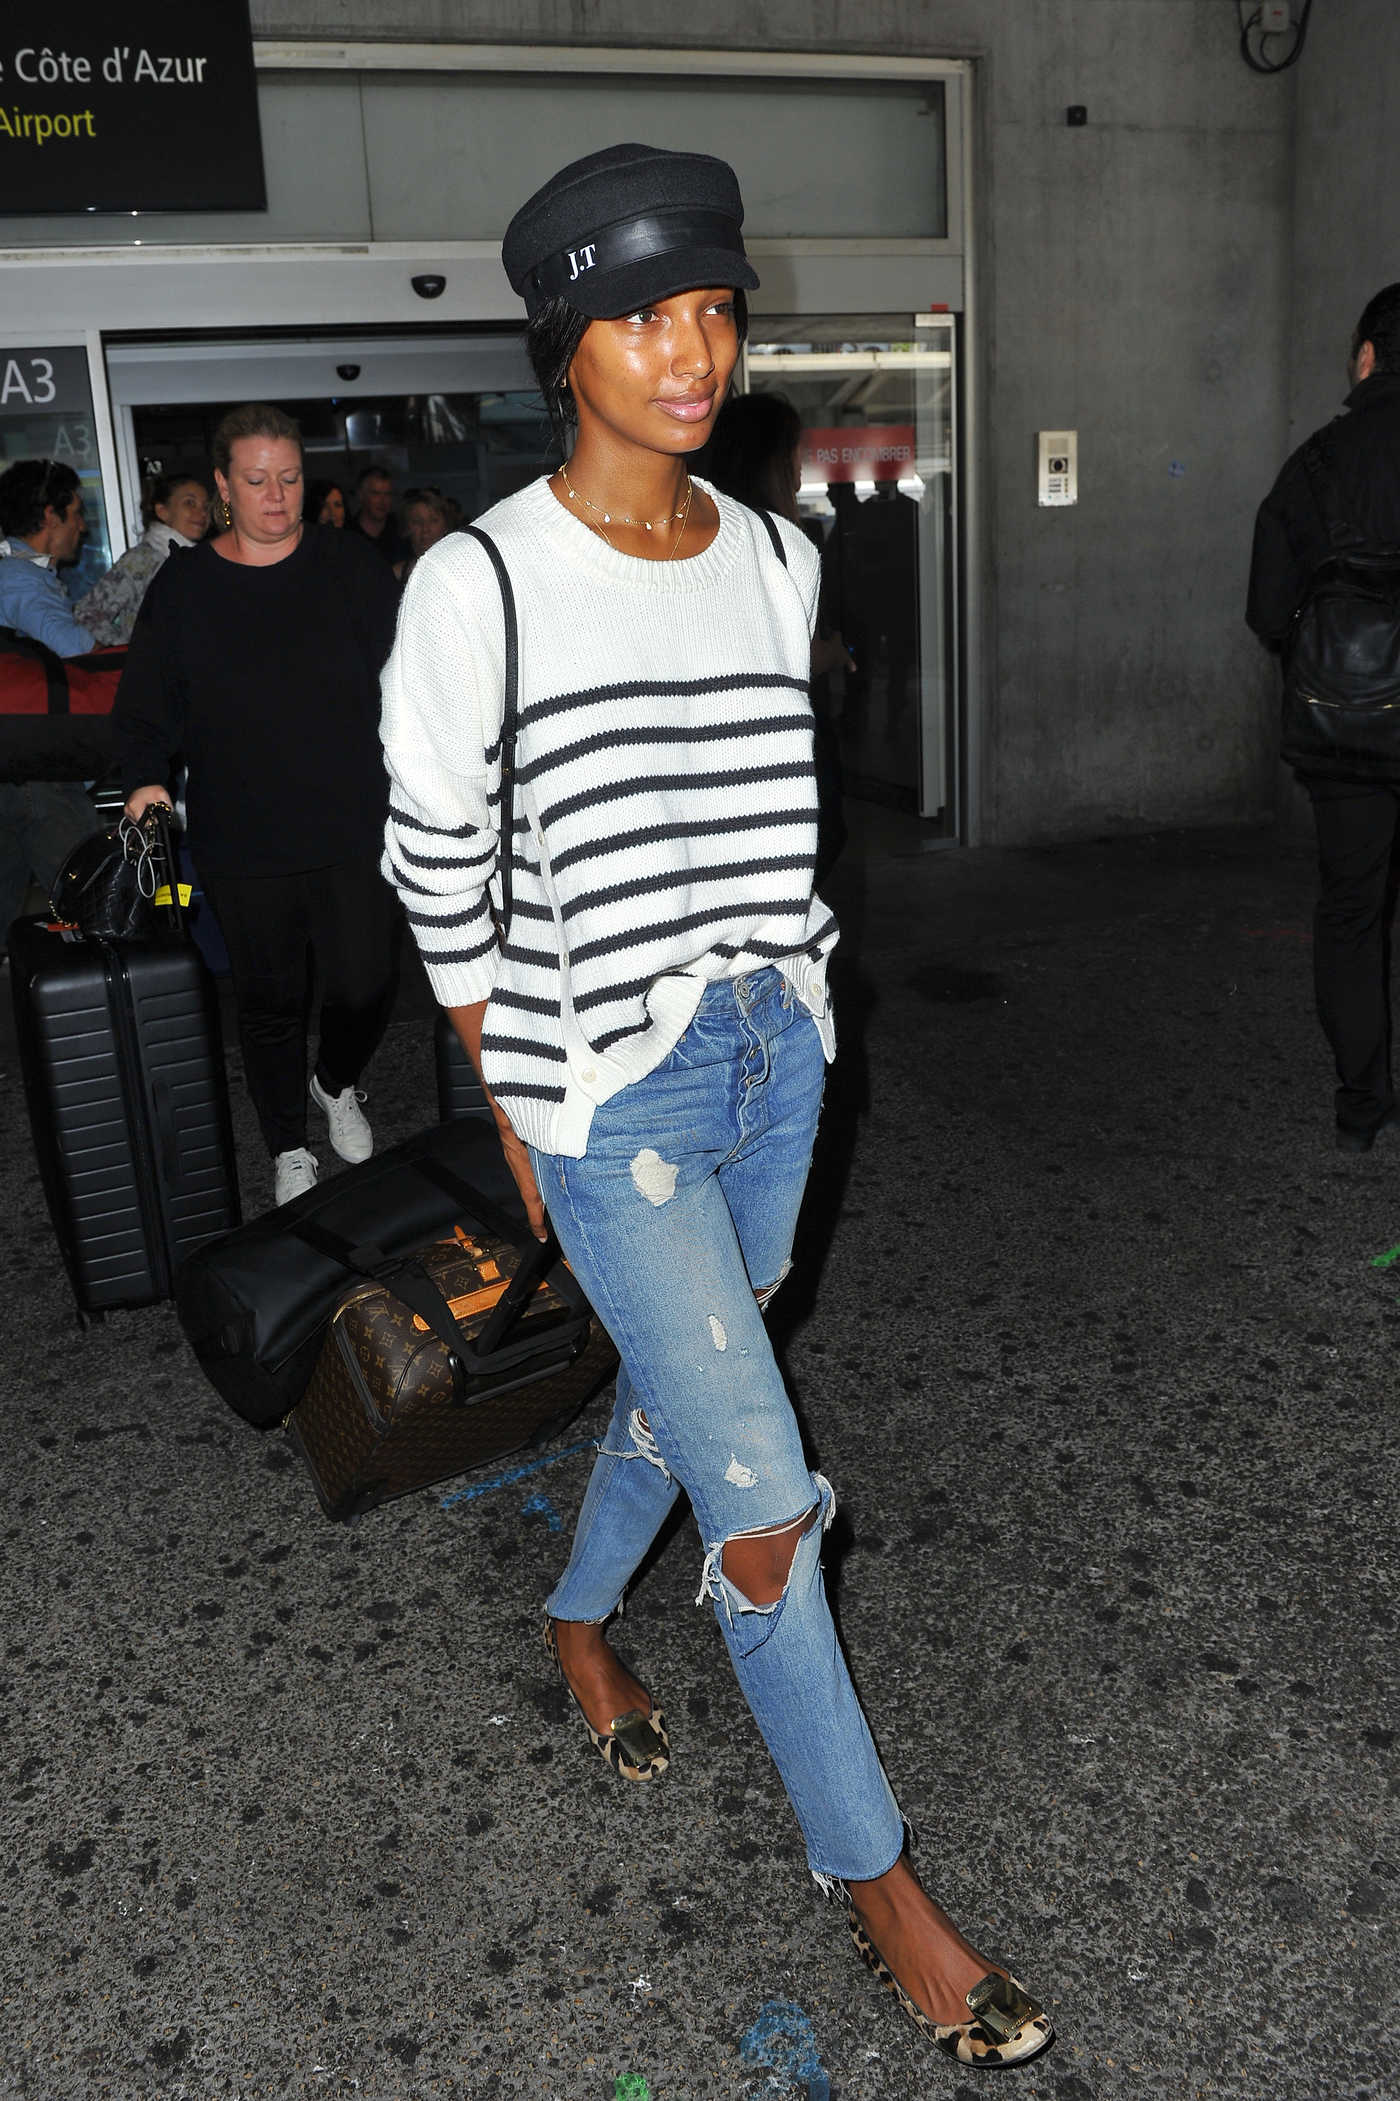 Jasmine Tookes Arrives at Cote D'Azur Airport in Nice 05/11/2018